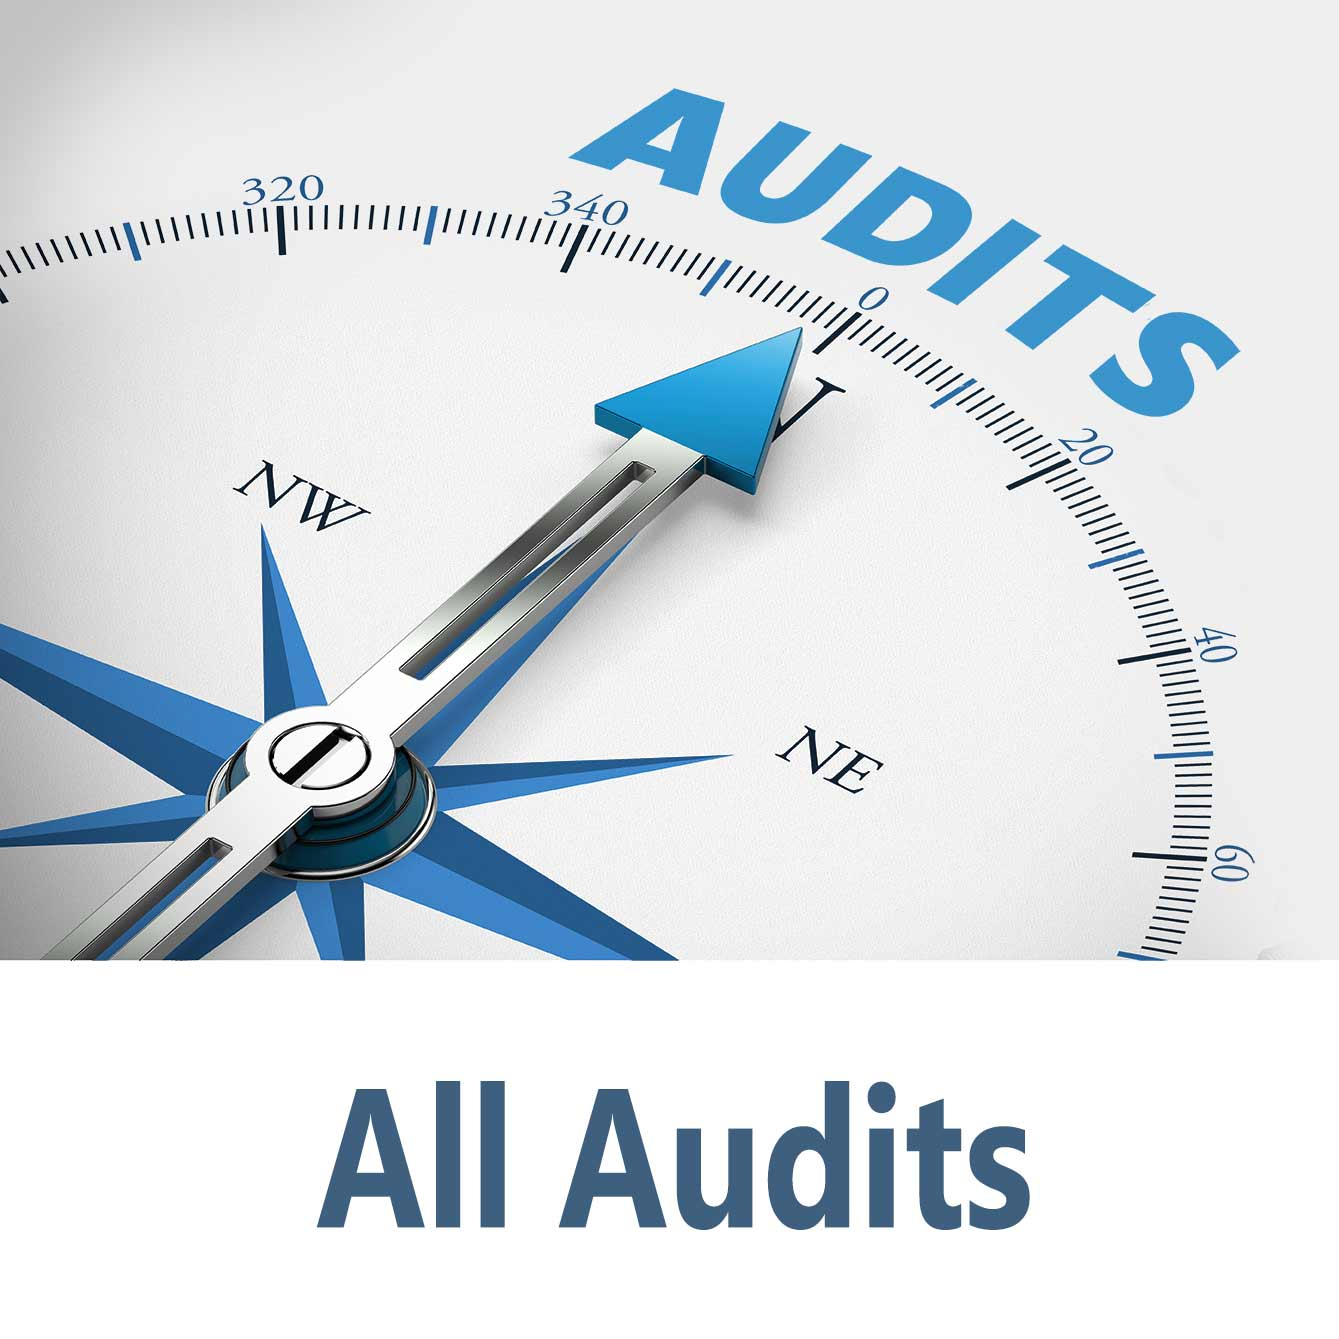 Open all audits